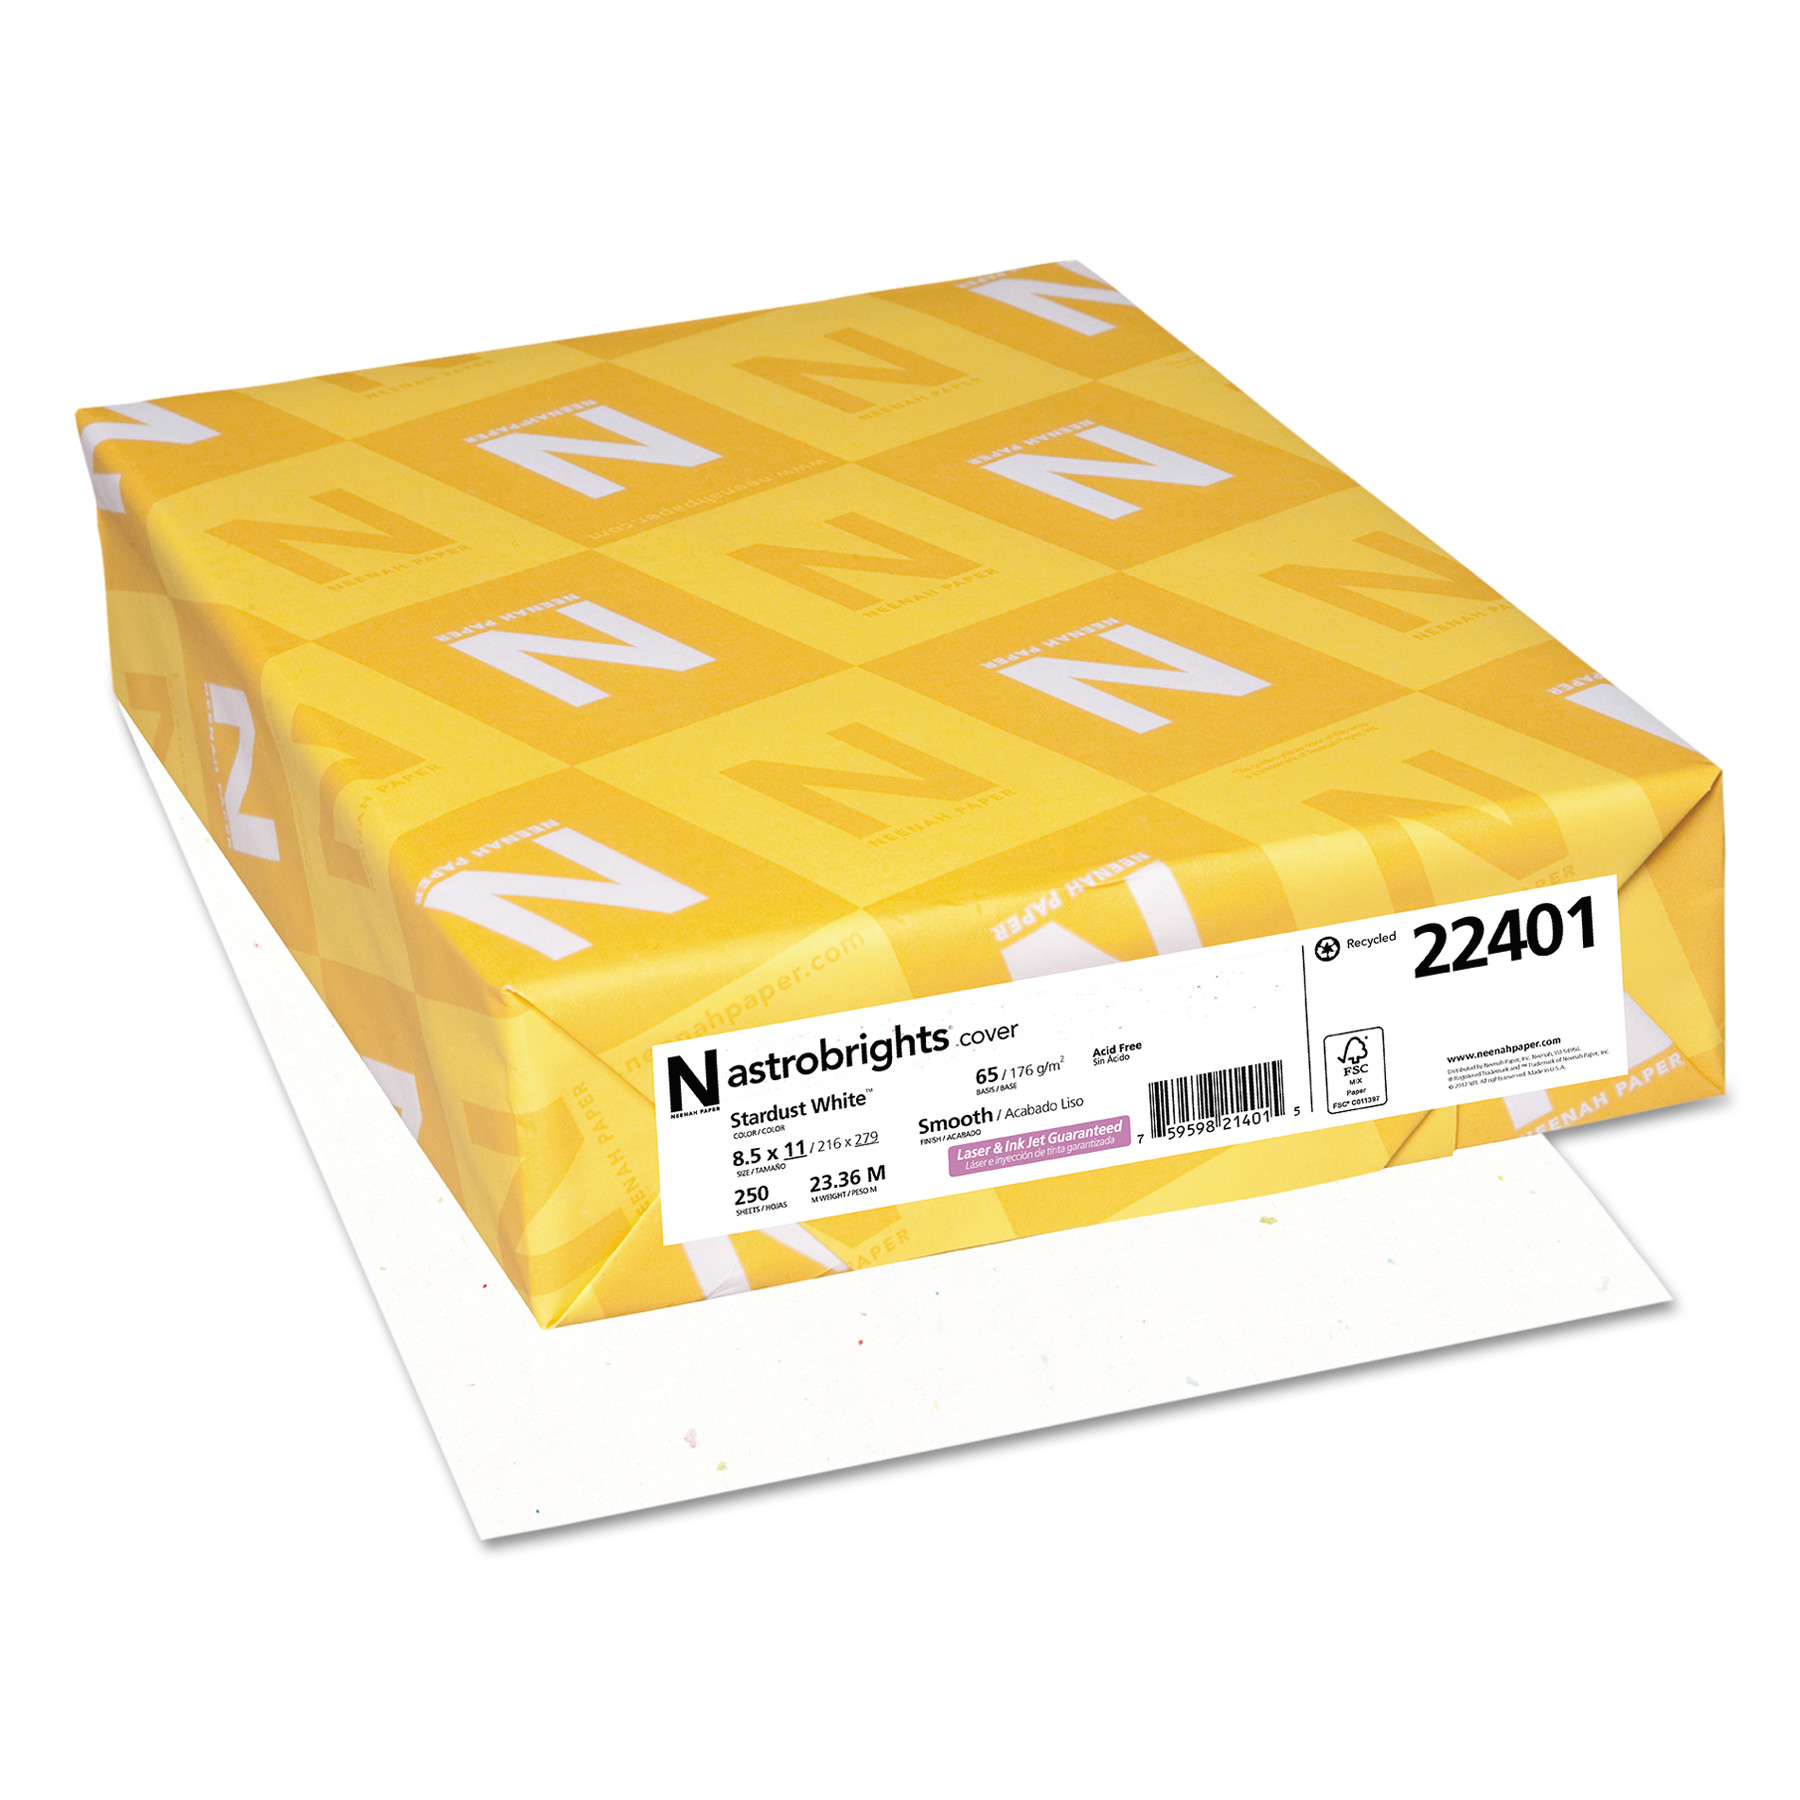 """Astrobrights Colored Card Stock, Stardust White, 8.5"""" X 11\ by Neenah Paper, Inc."""